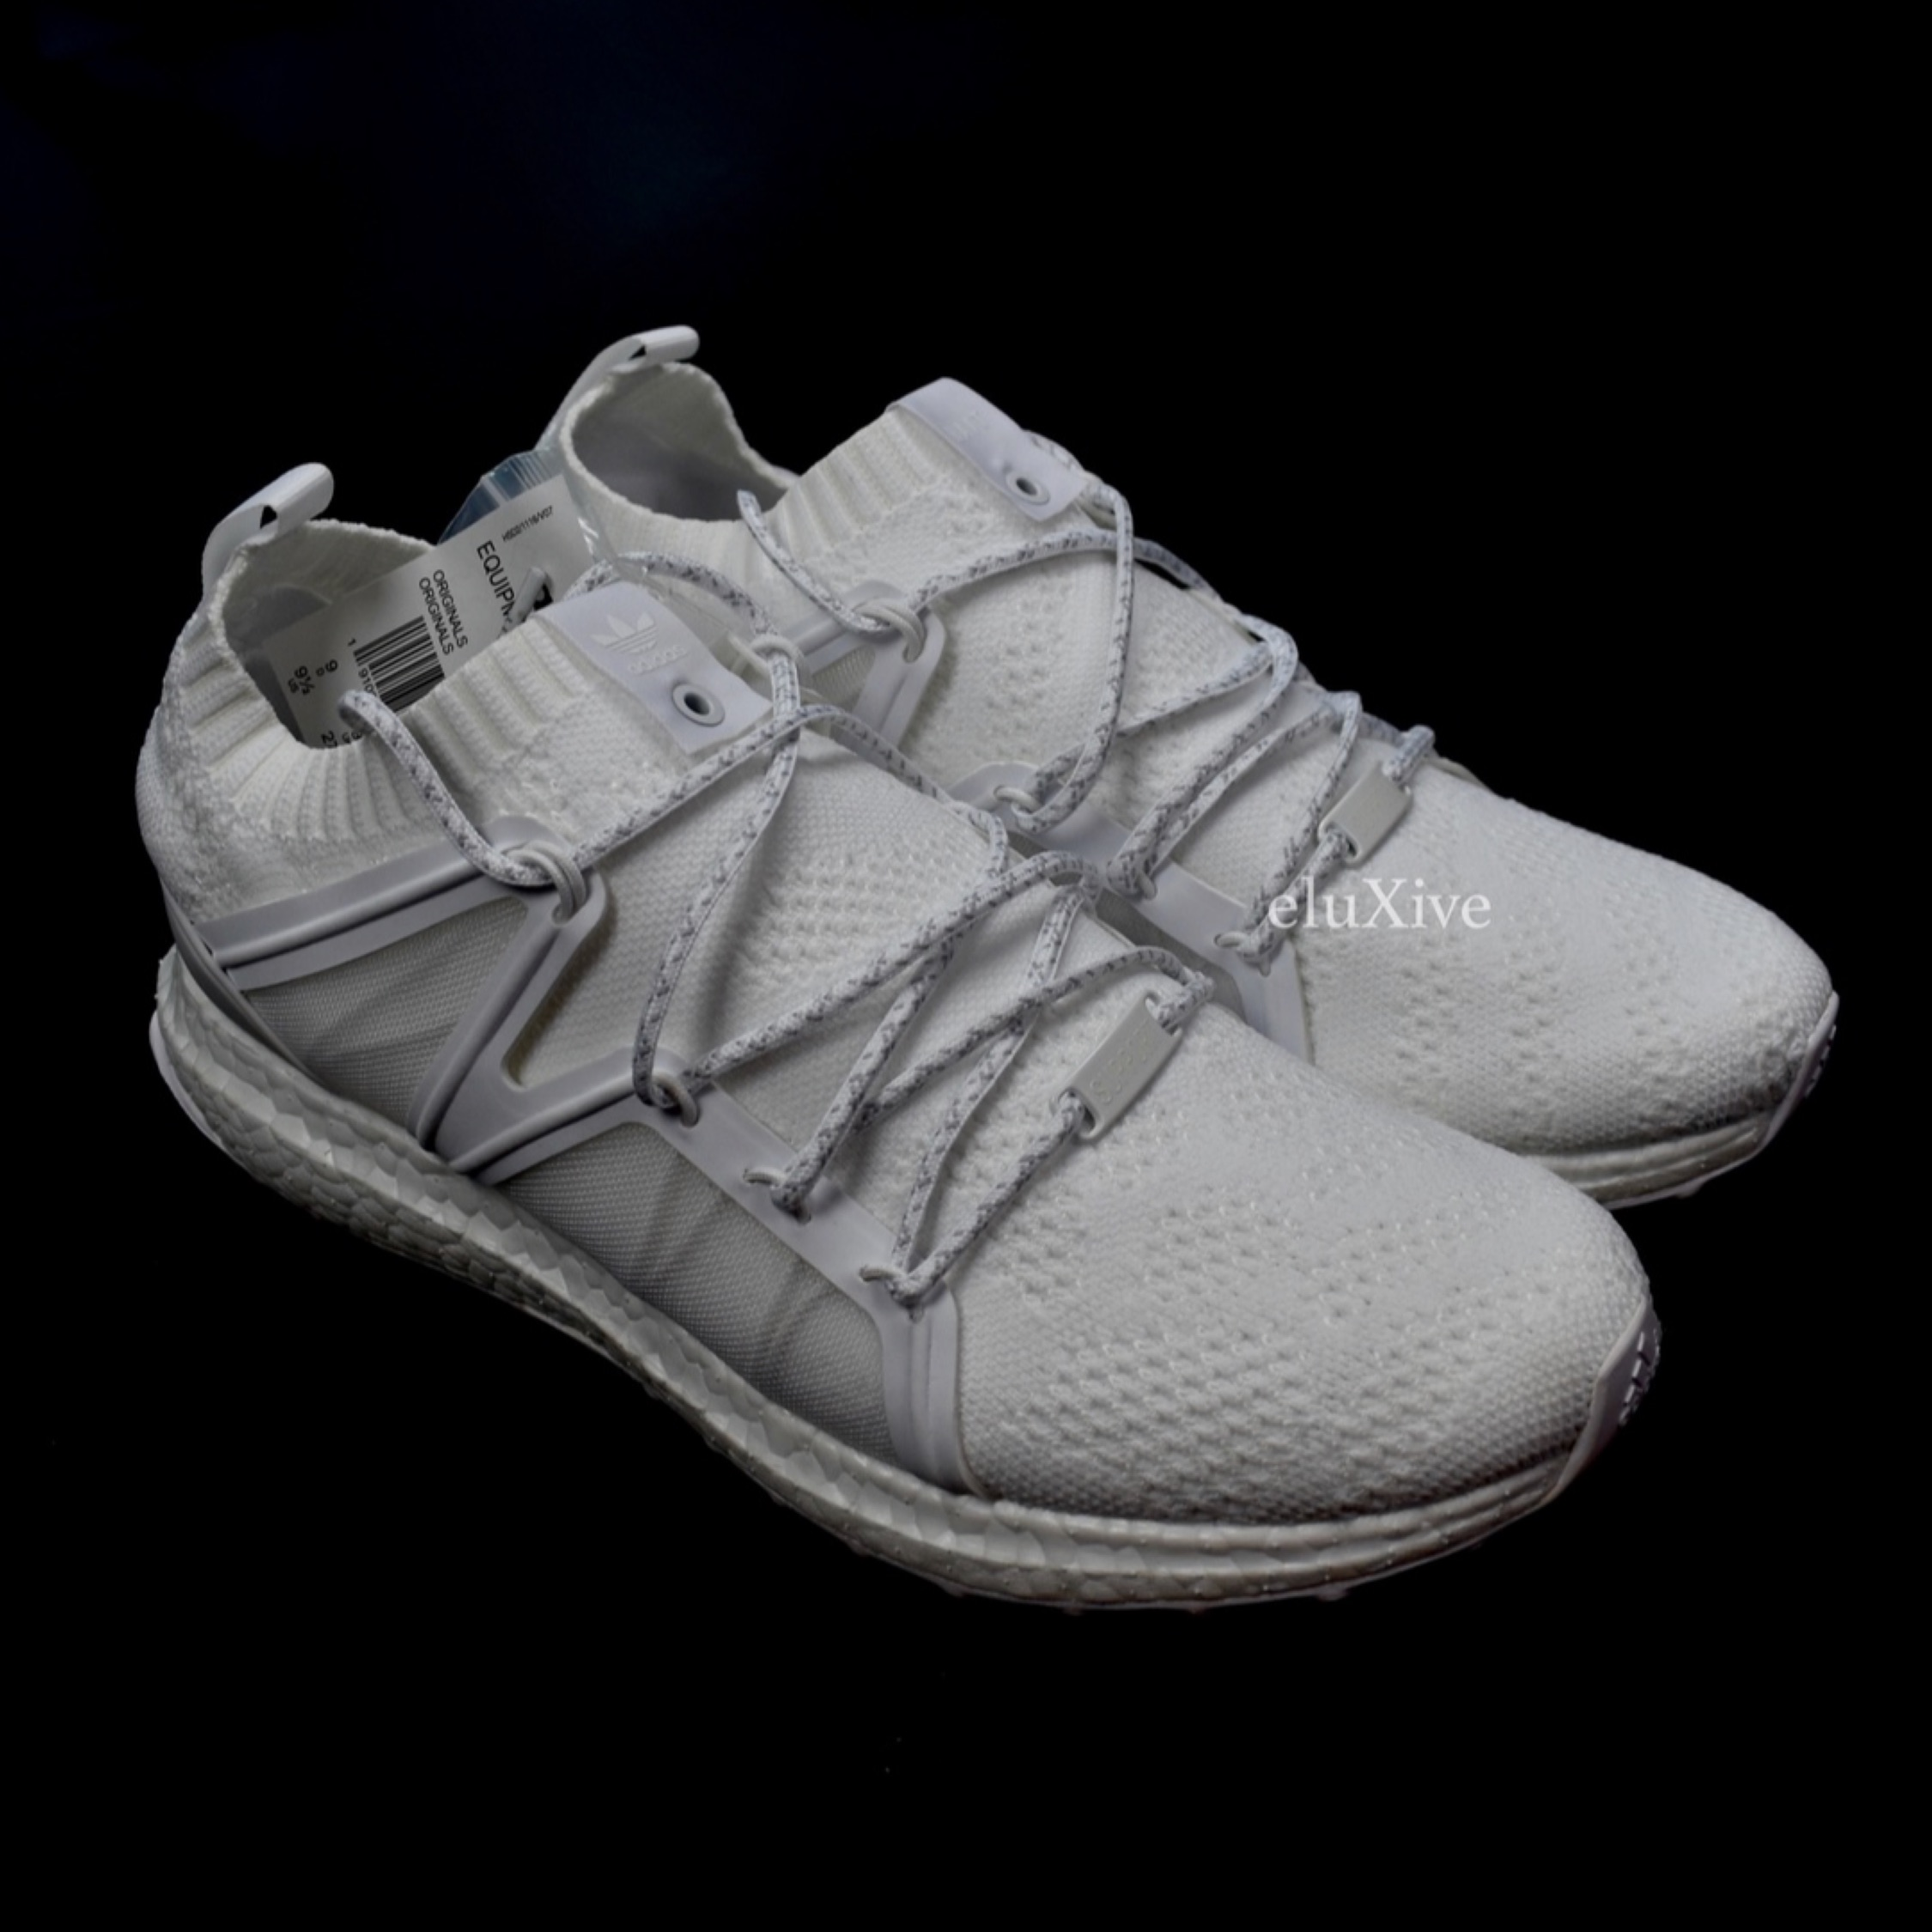 the best attitude fe34c 9d0b9 Adidas X Bat Eqt Support Ultra Boost New